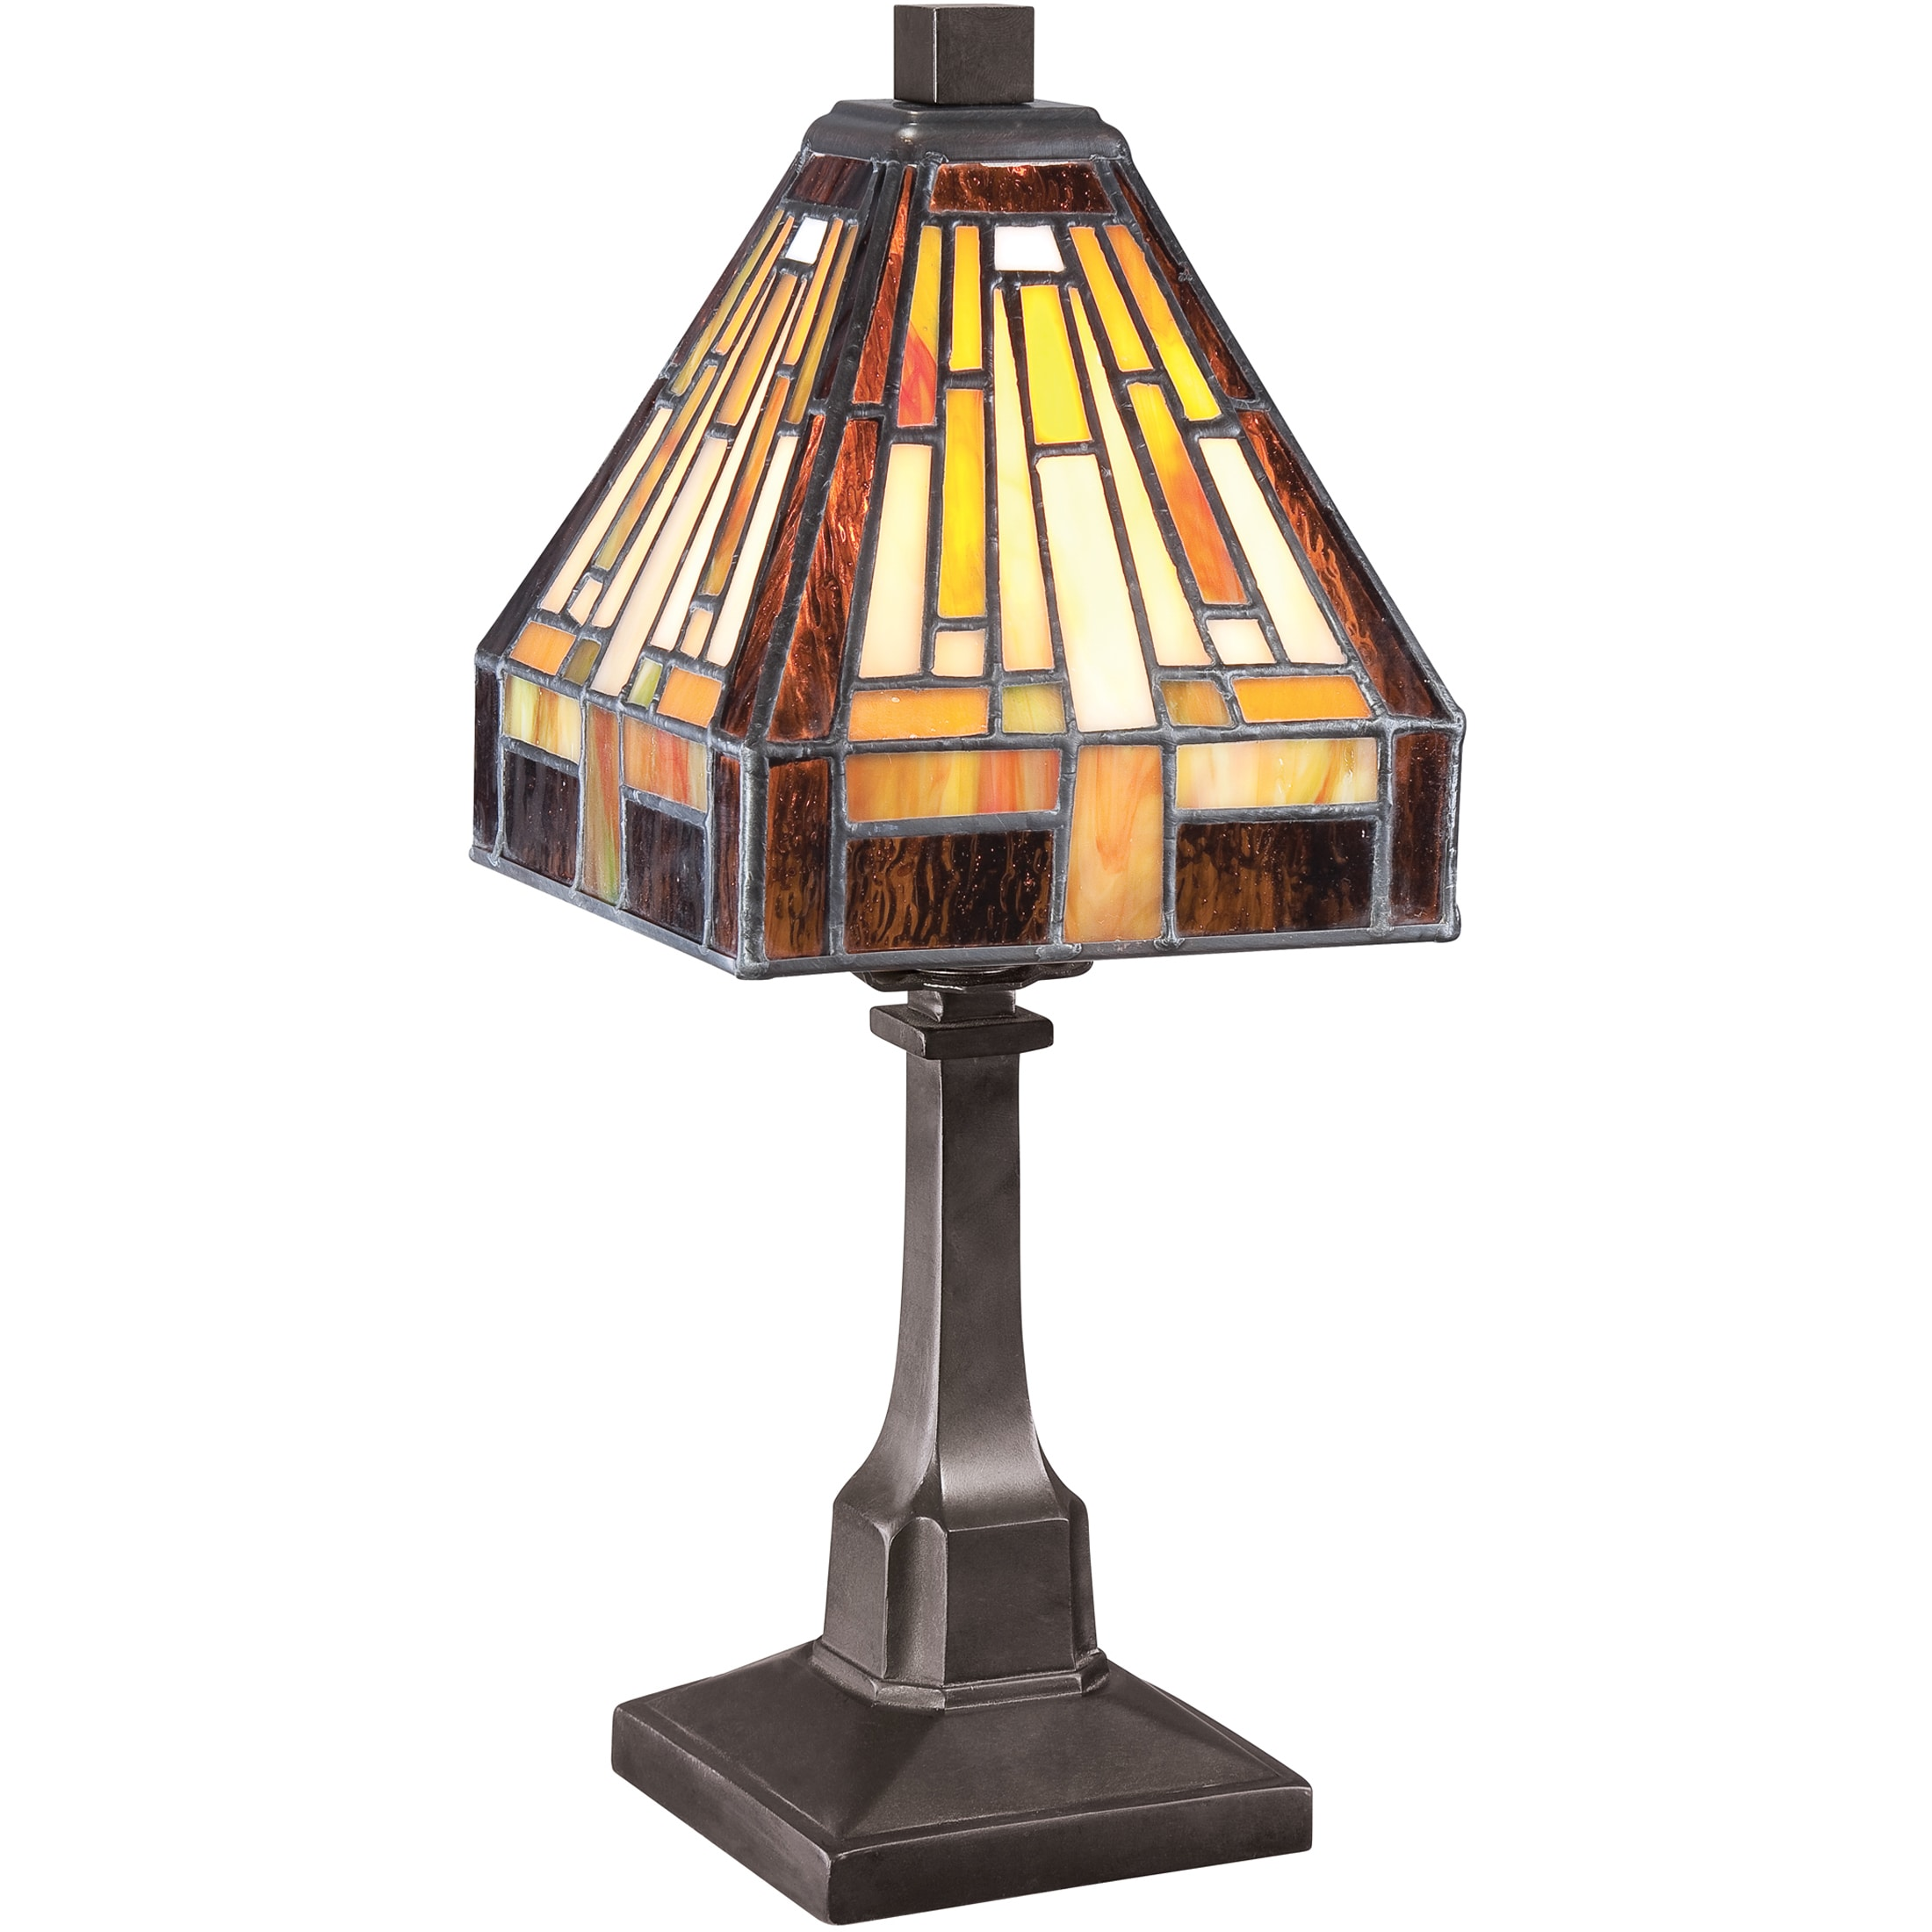 Quoizel Stephen Tiffany-style Glass Vintage Bronze Finish Desk Lamp